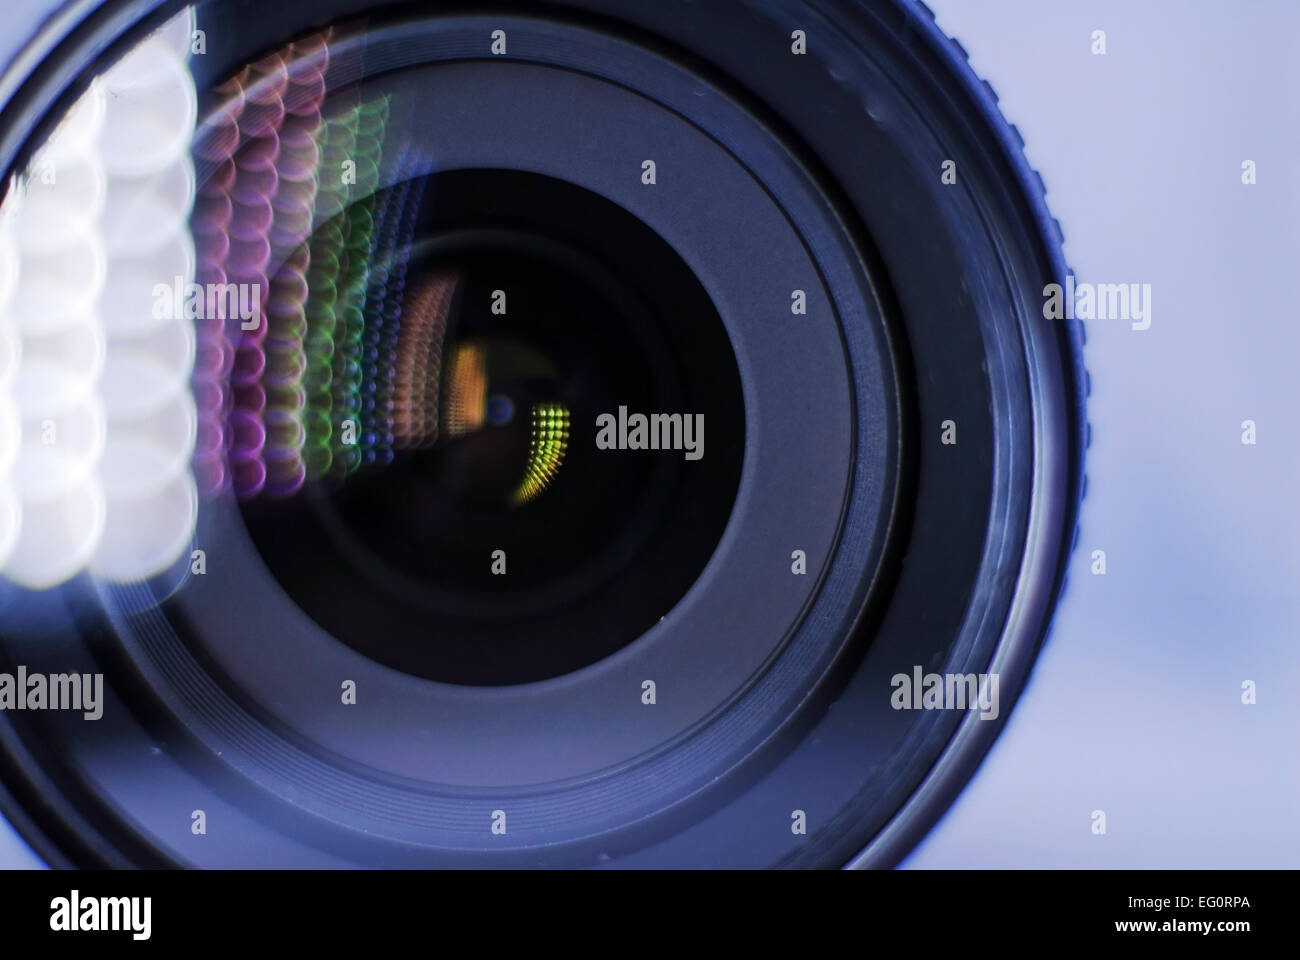 Nikon camera lens taken close up, using a torch to create the colours running back into the lens. - Stock Image